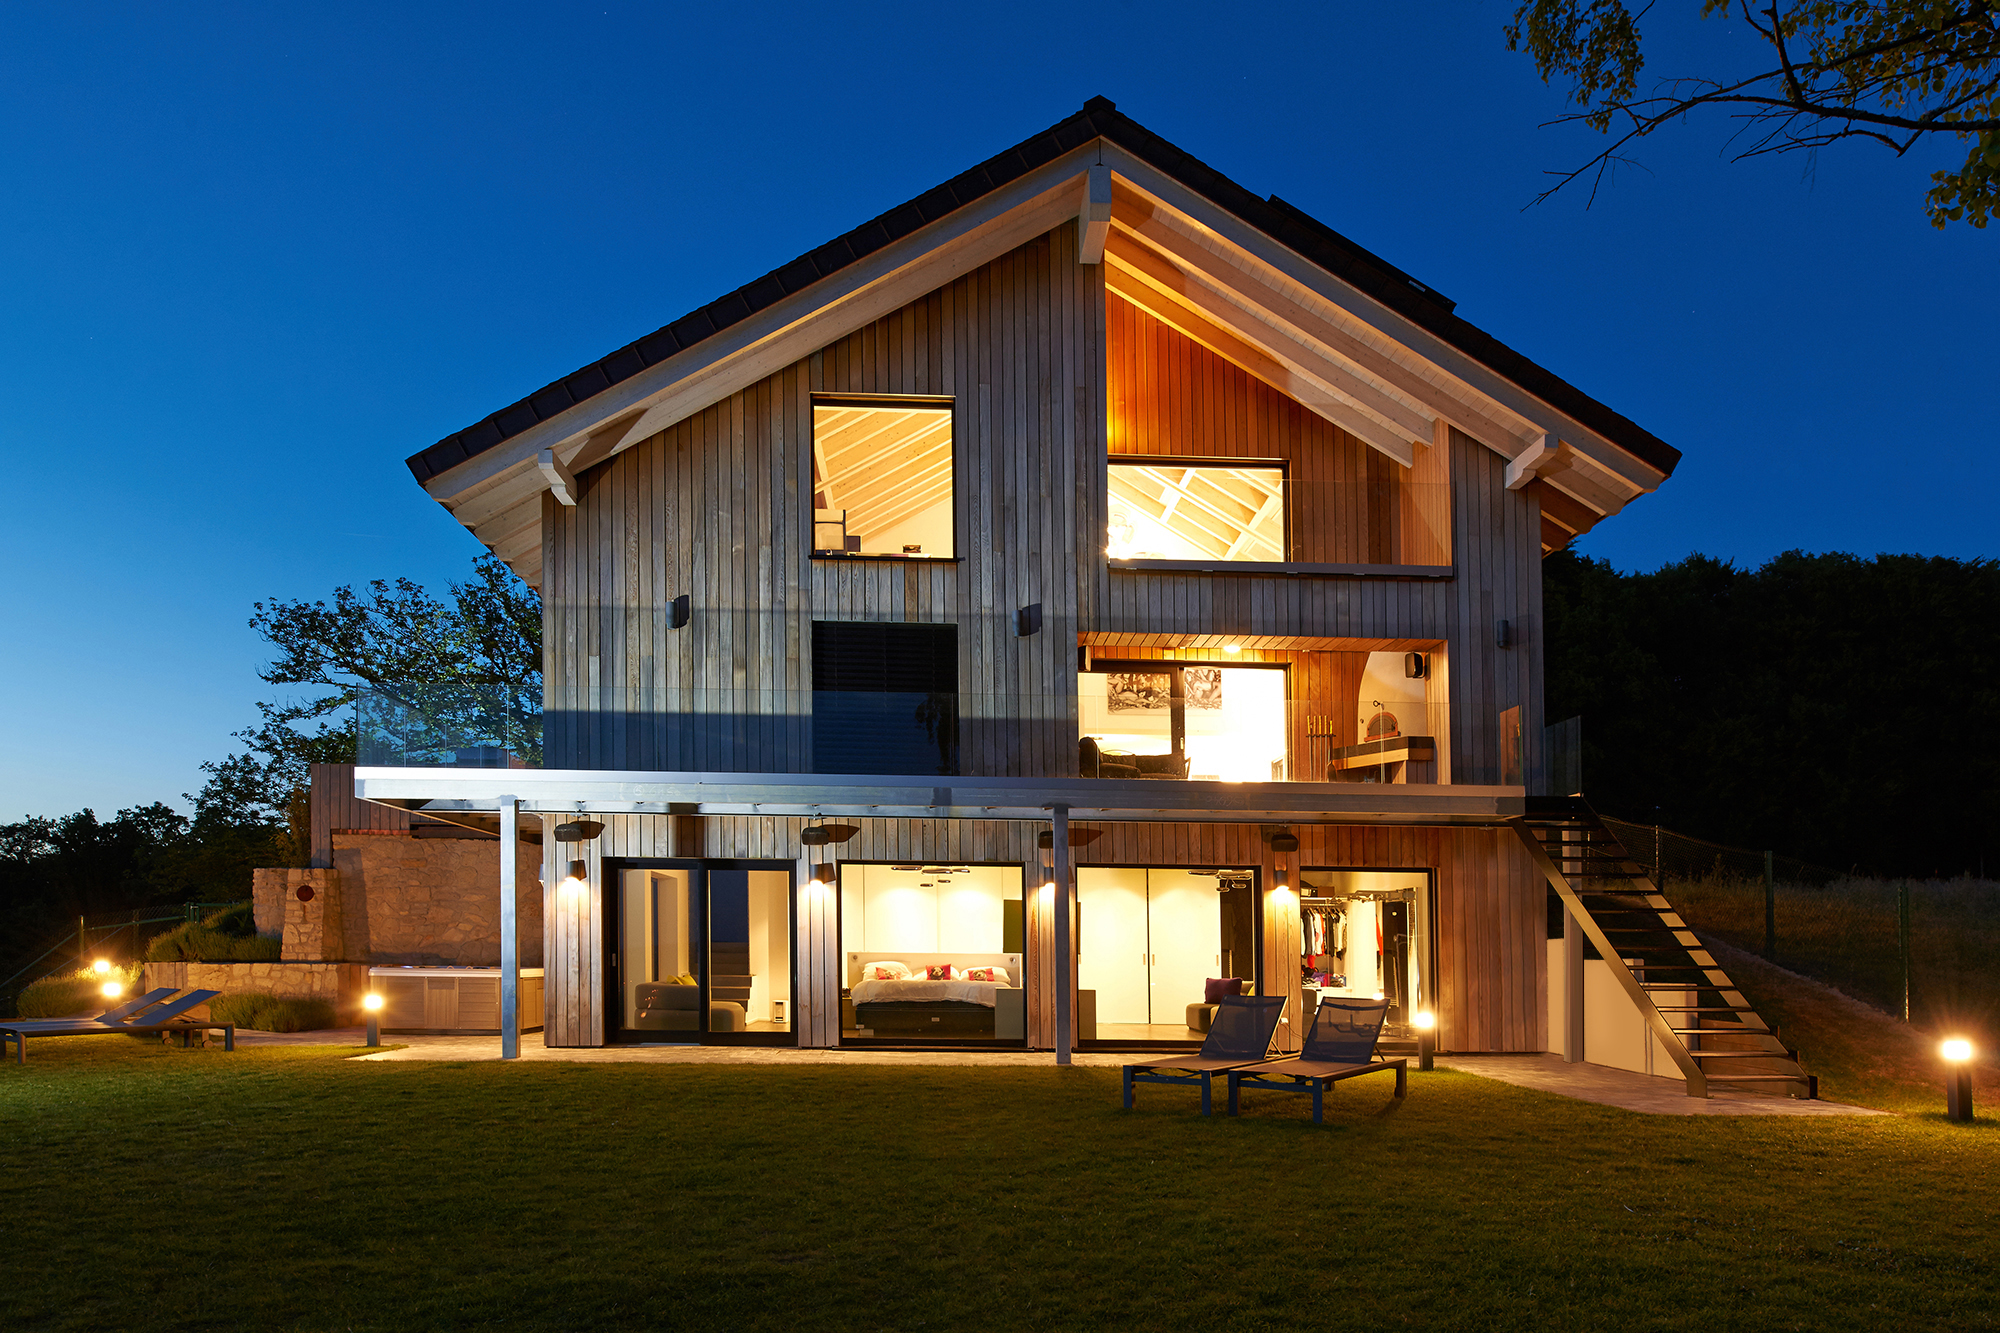 Single Family Home for Sale at Propriété d'exception Bech, Luxembourg